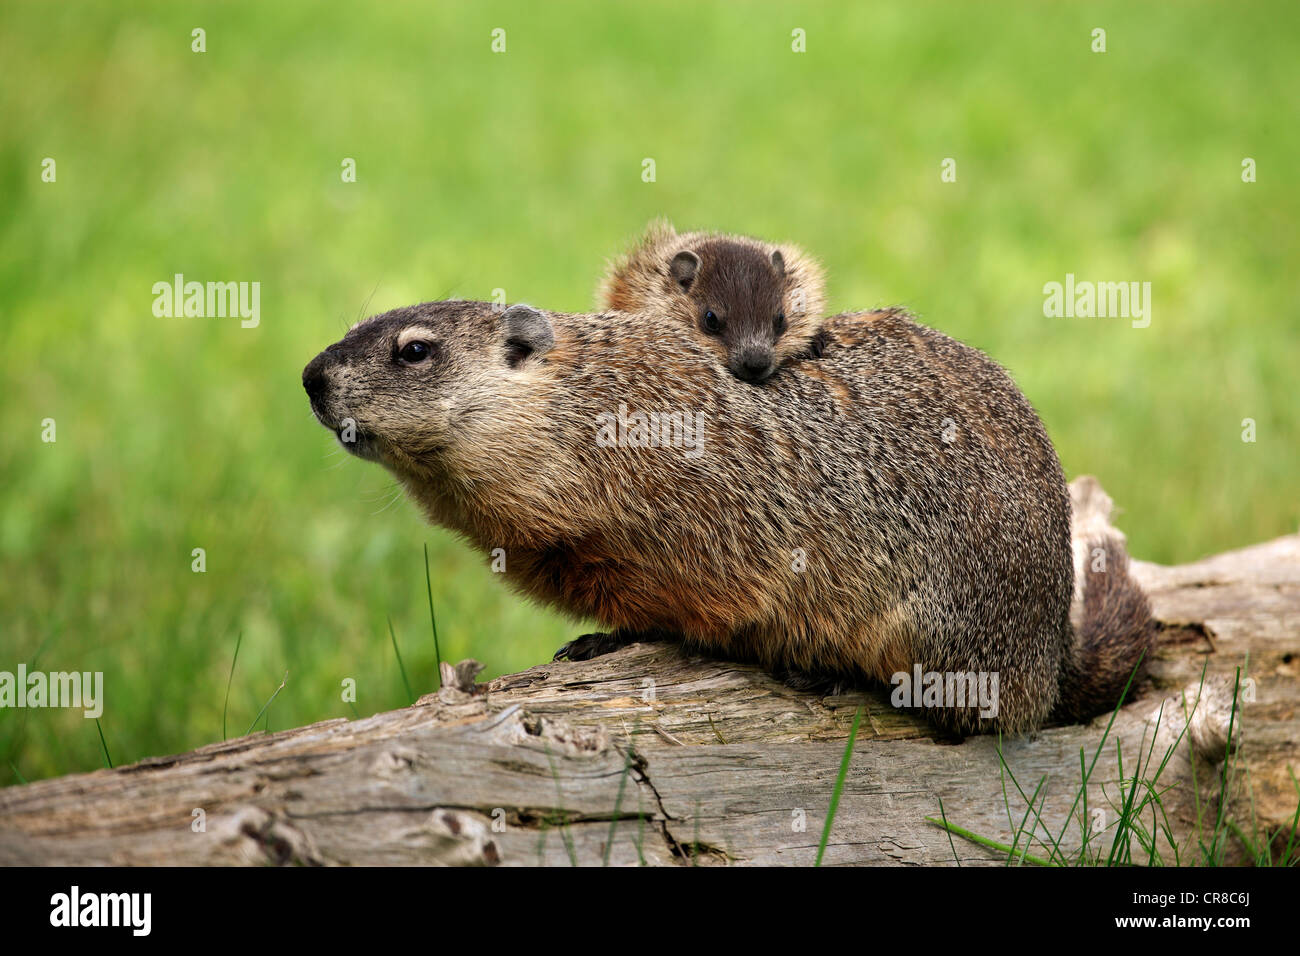 Groundhog, Woodchuck (Marmota monax), mother with young, social behavior, Minnesota, USA - Stock Image